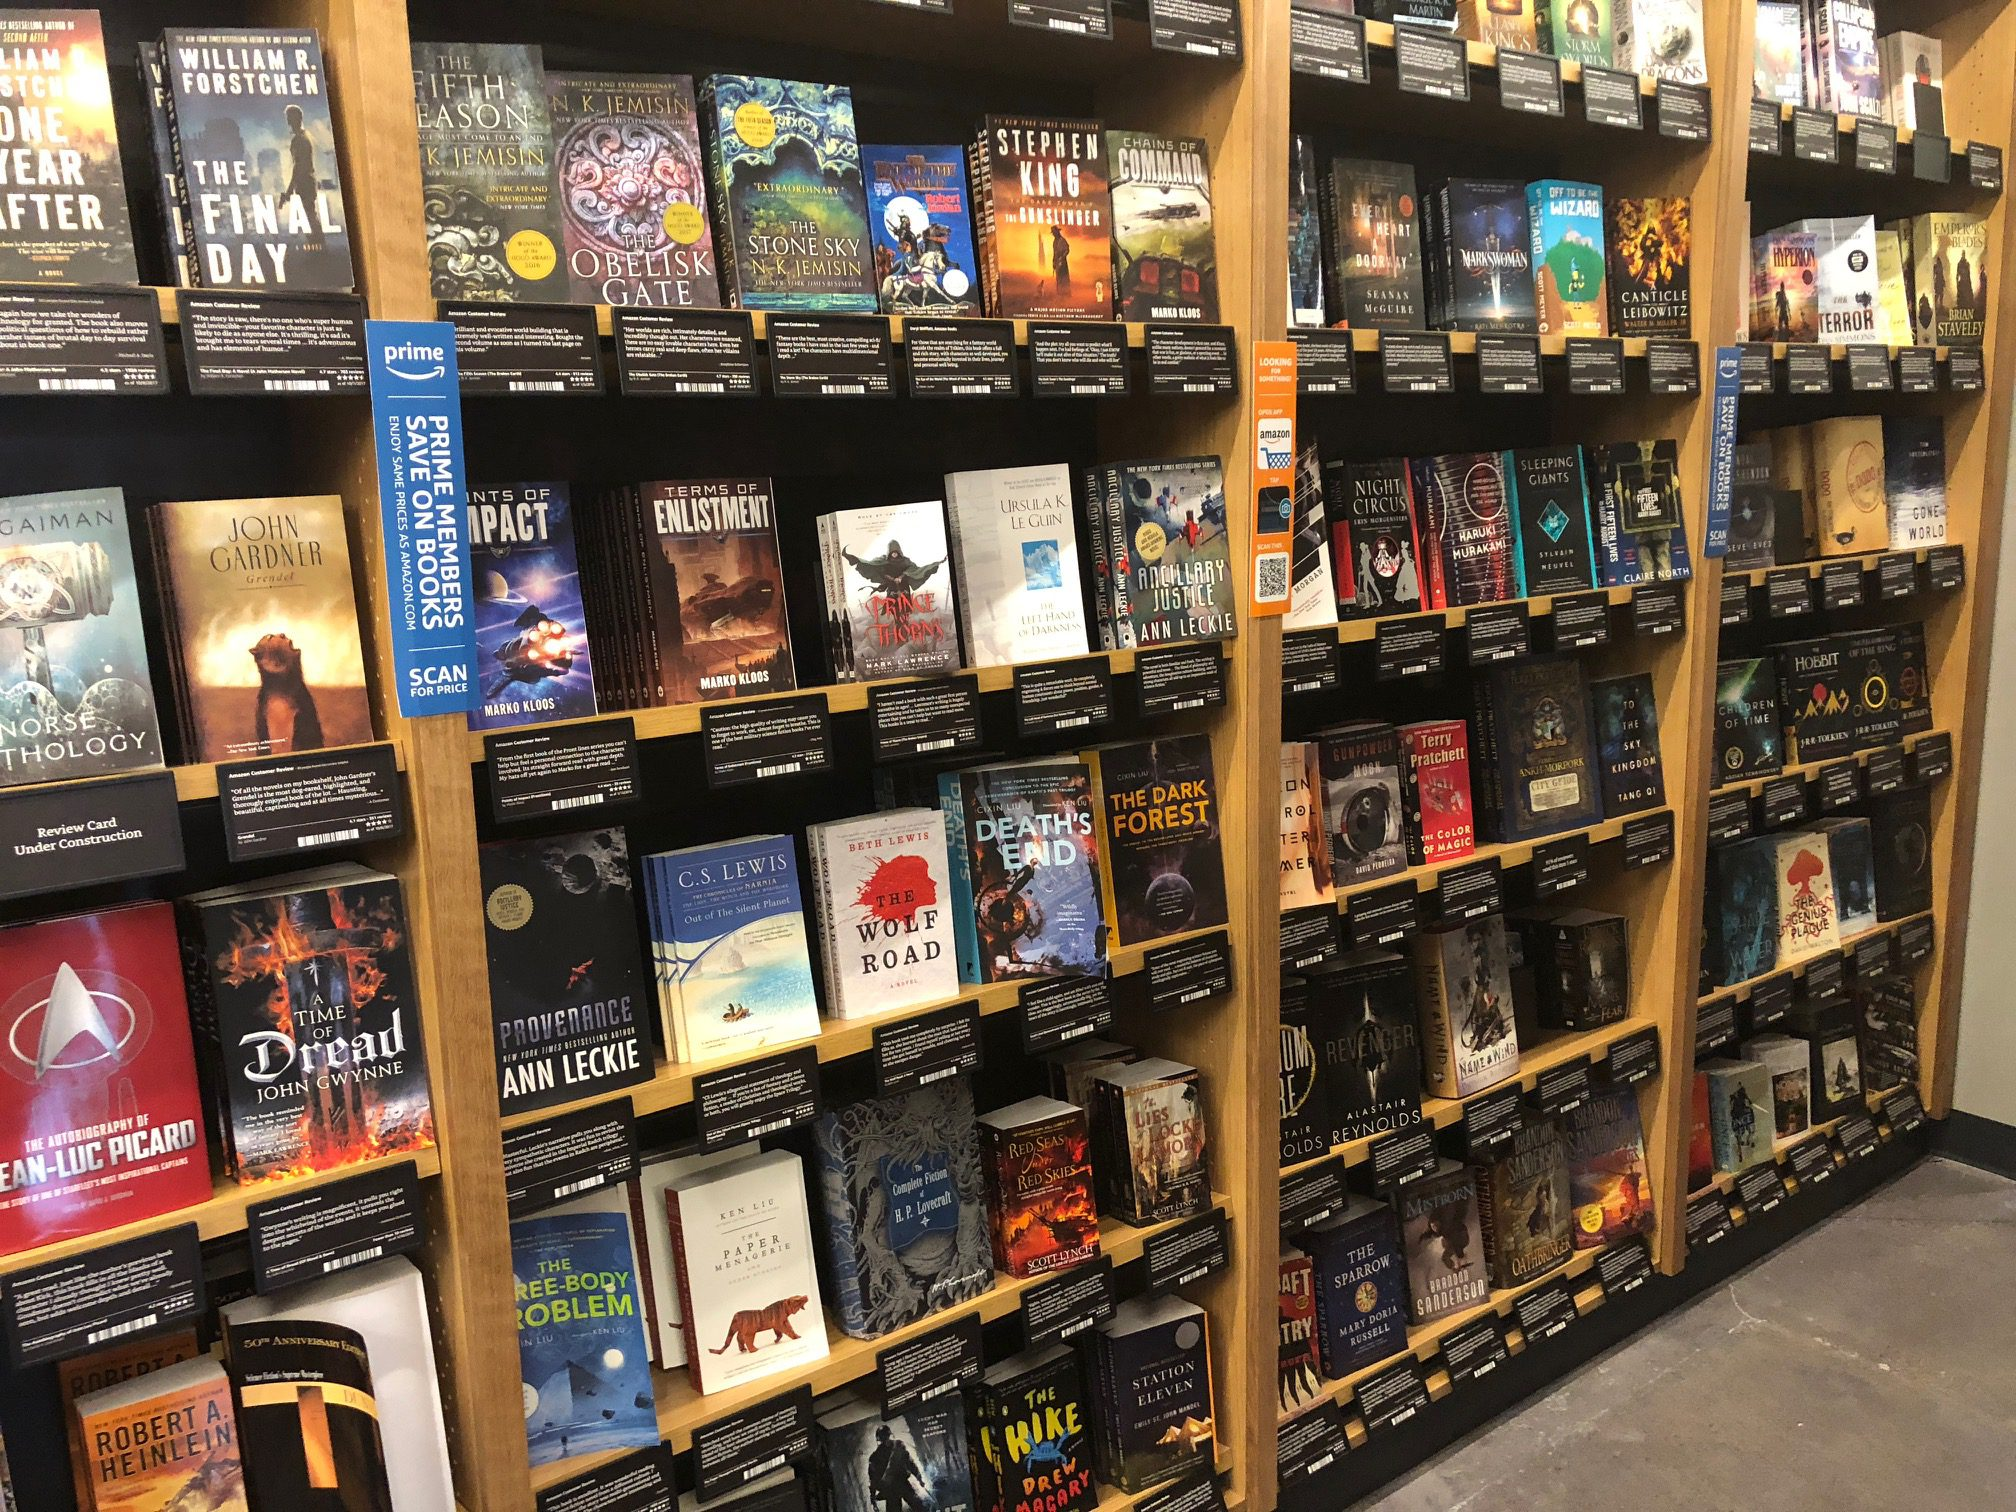 My Trip To An Amazon Bookstore: A Review